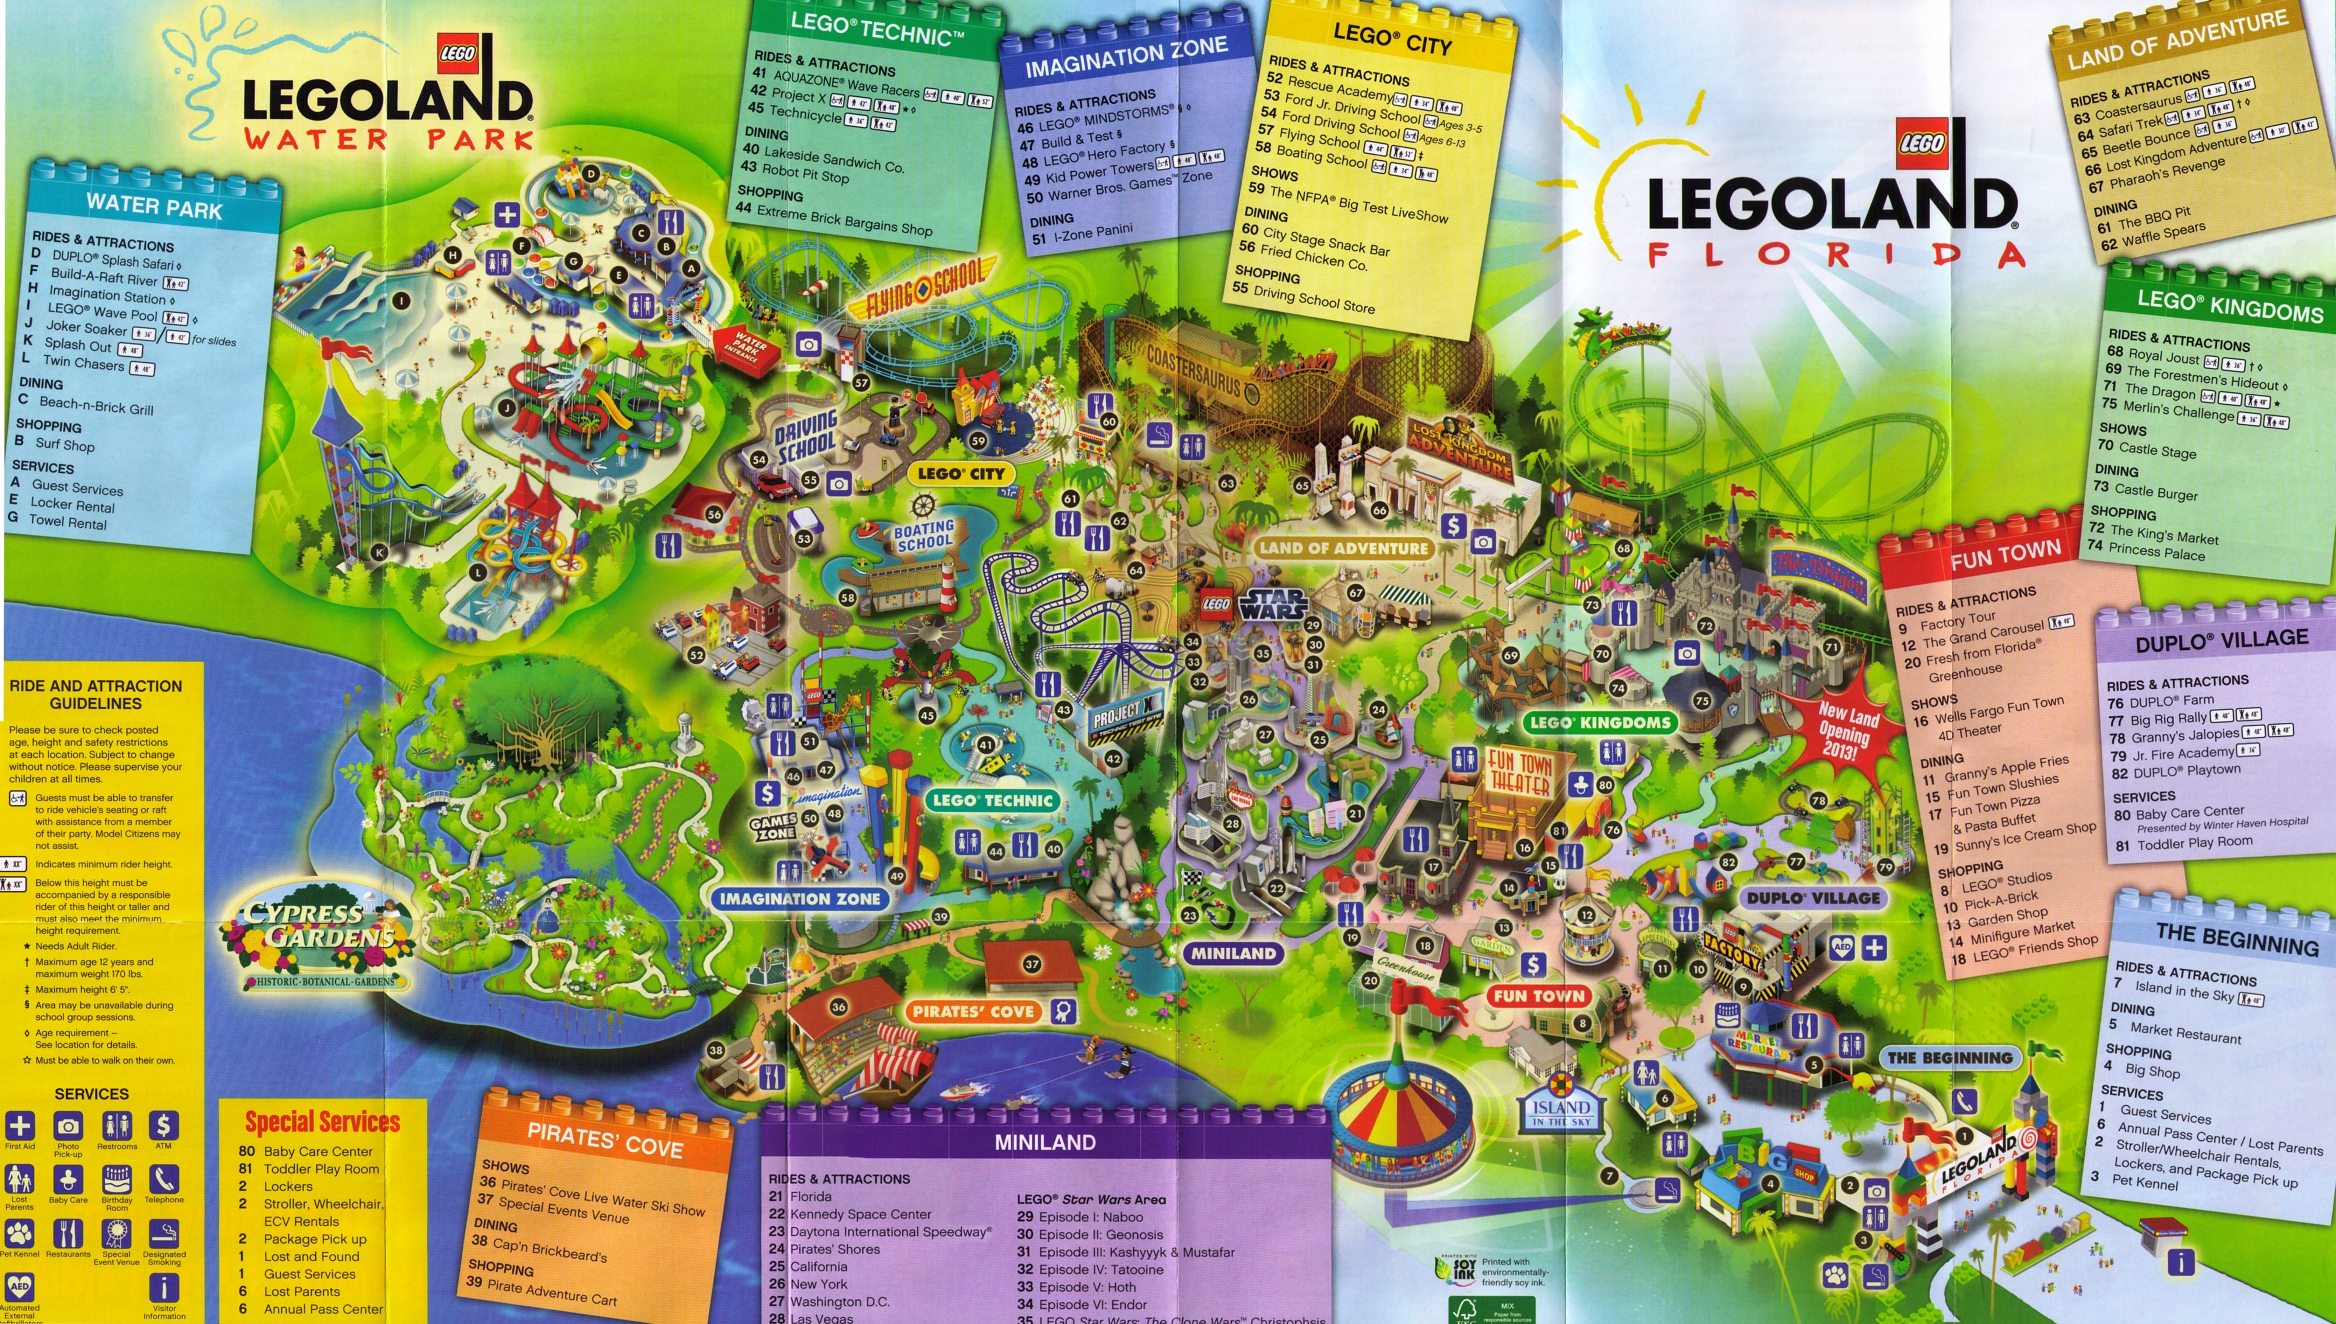 Park Map 3 At Legoland Florida Photos - Legoland Florida Park Map